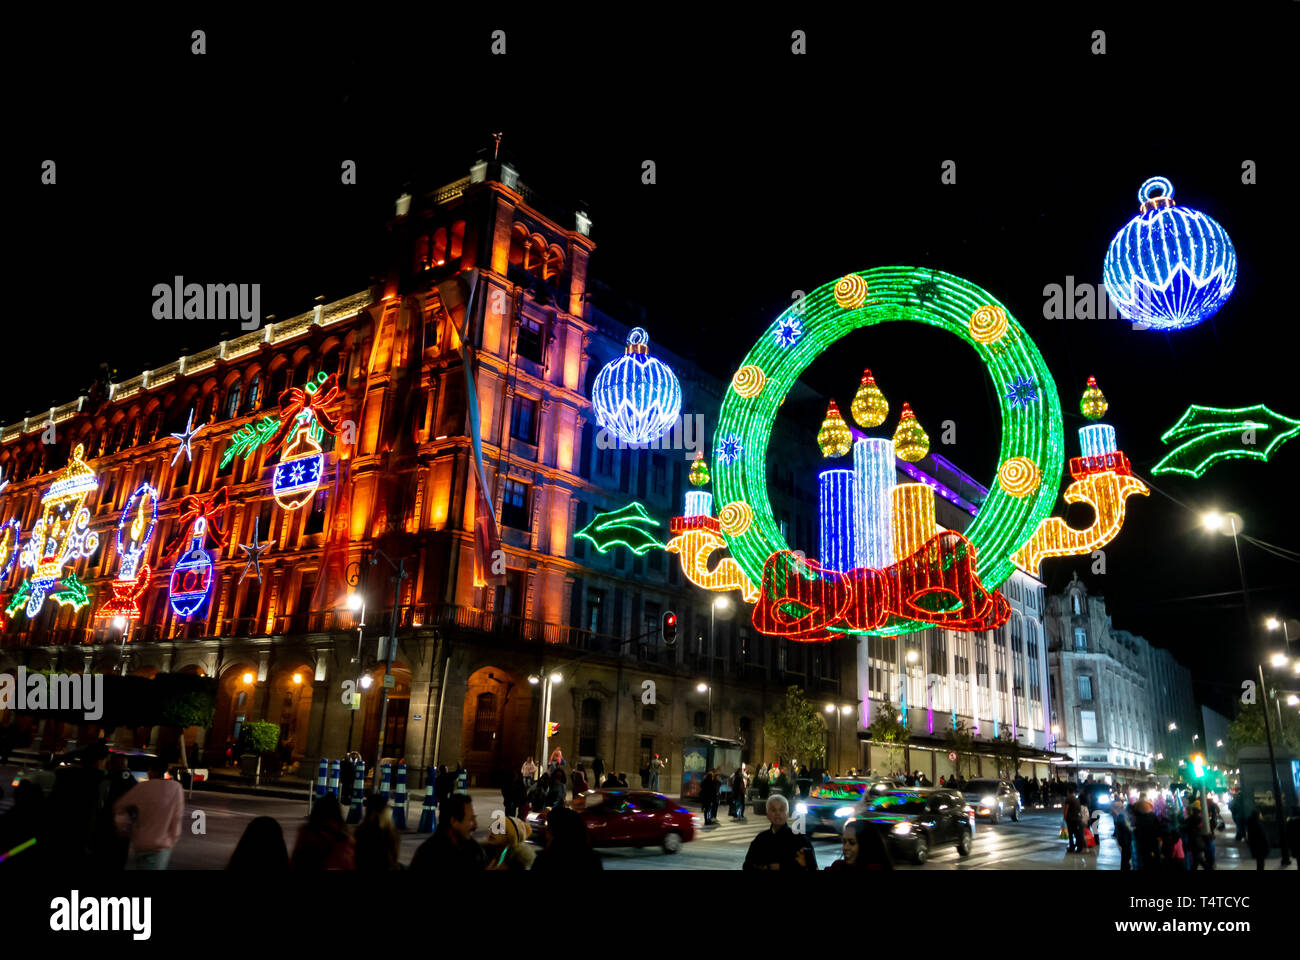 Images Of Zocalo In Mexico Christmas 2021 Mexico City Zocalo Town Square Christmas Night Celebration High Resolution Stock Photography And Images Alamy